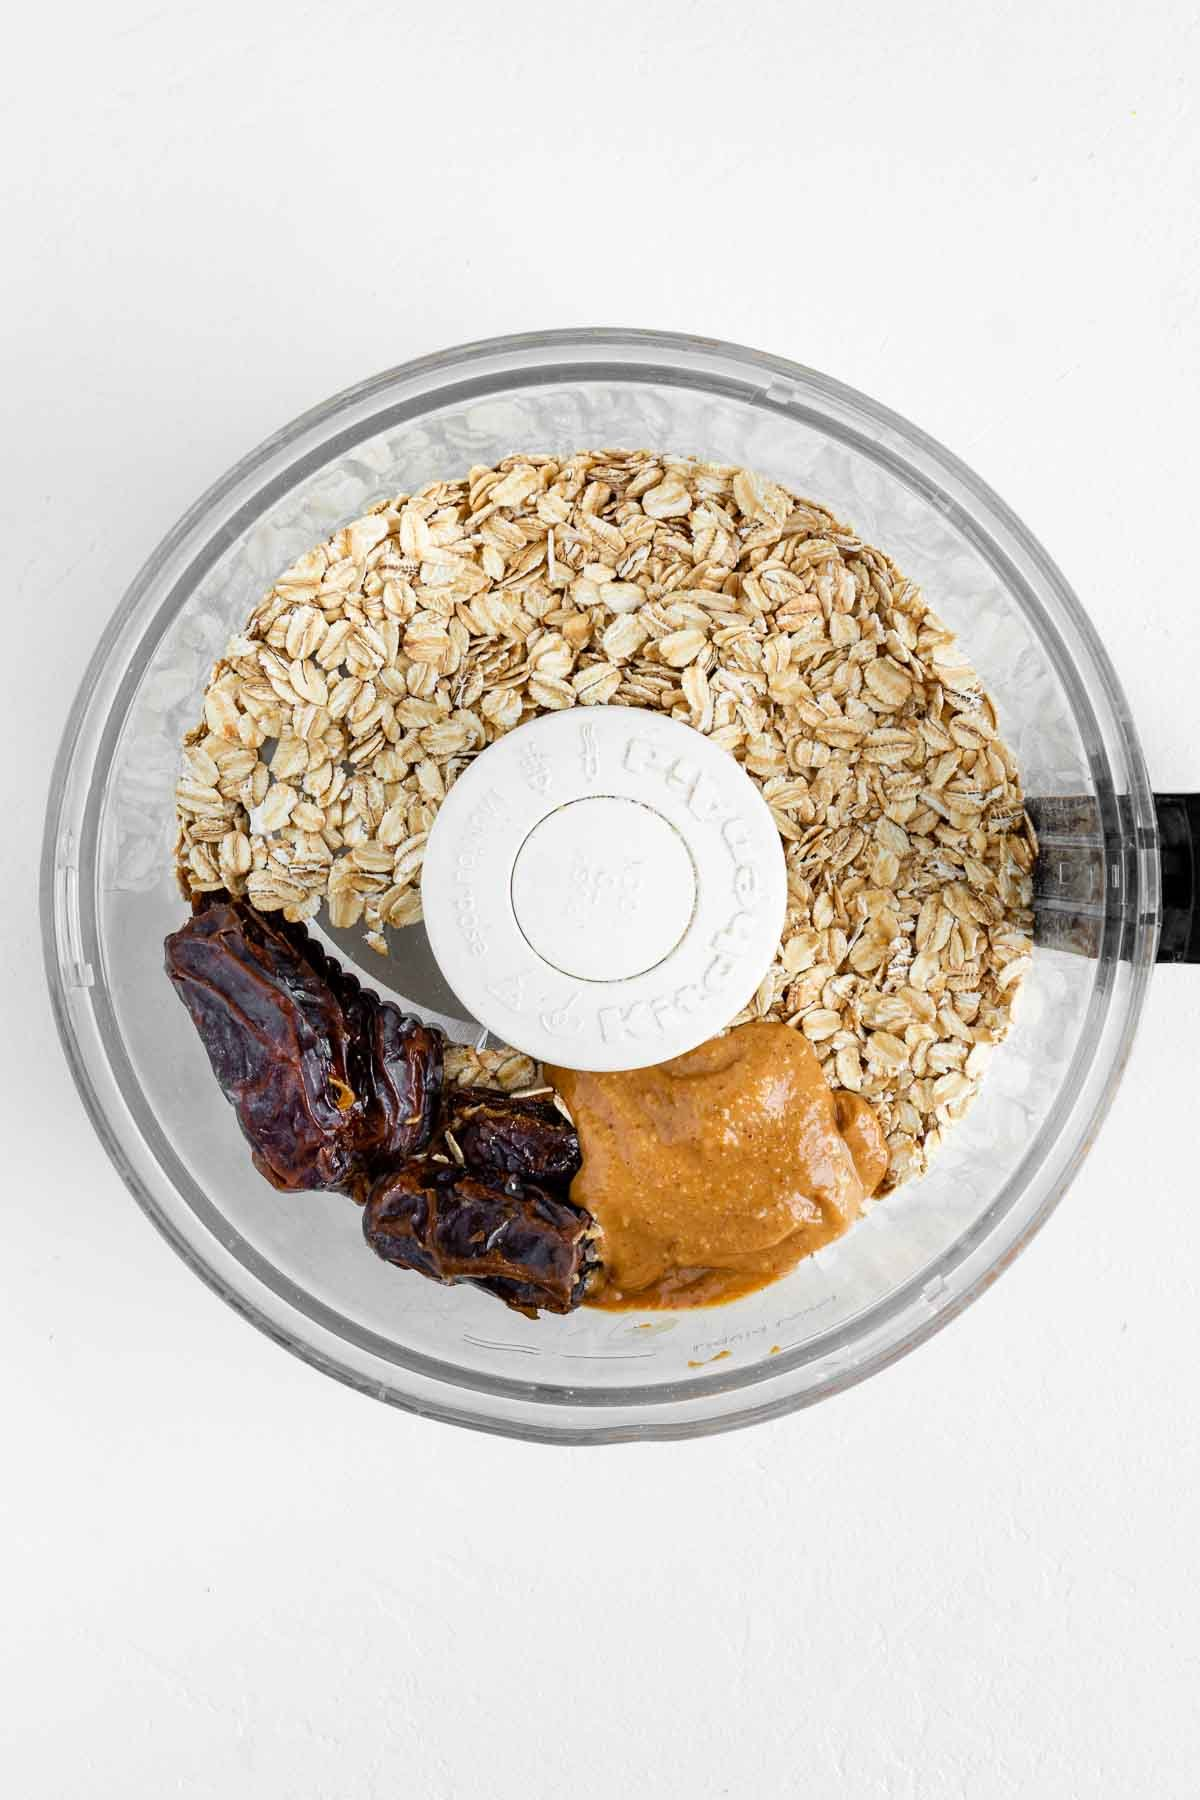 oats, dates, and peanut butter in a food processor